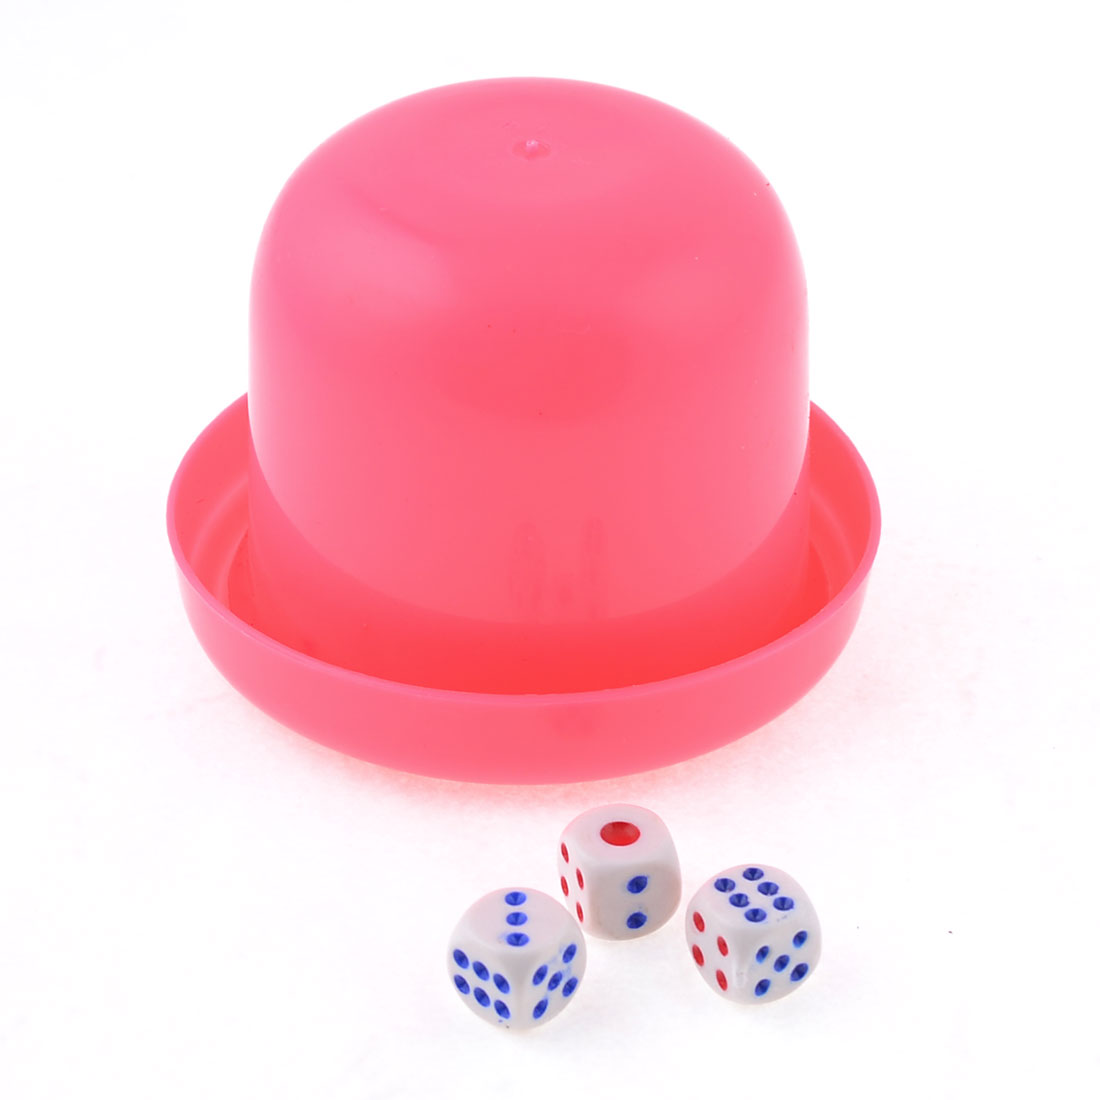 KTV Pub Game Toy Pink Plastic Holder Shaking Cup Box w 5 Dice